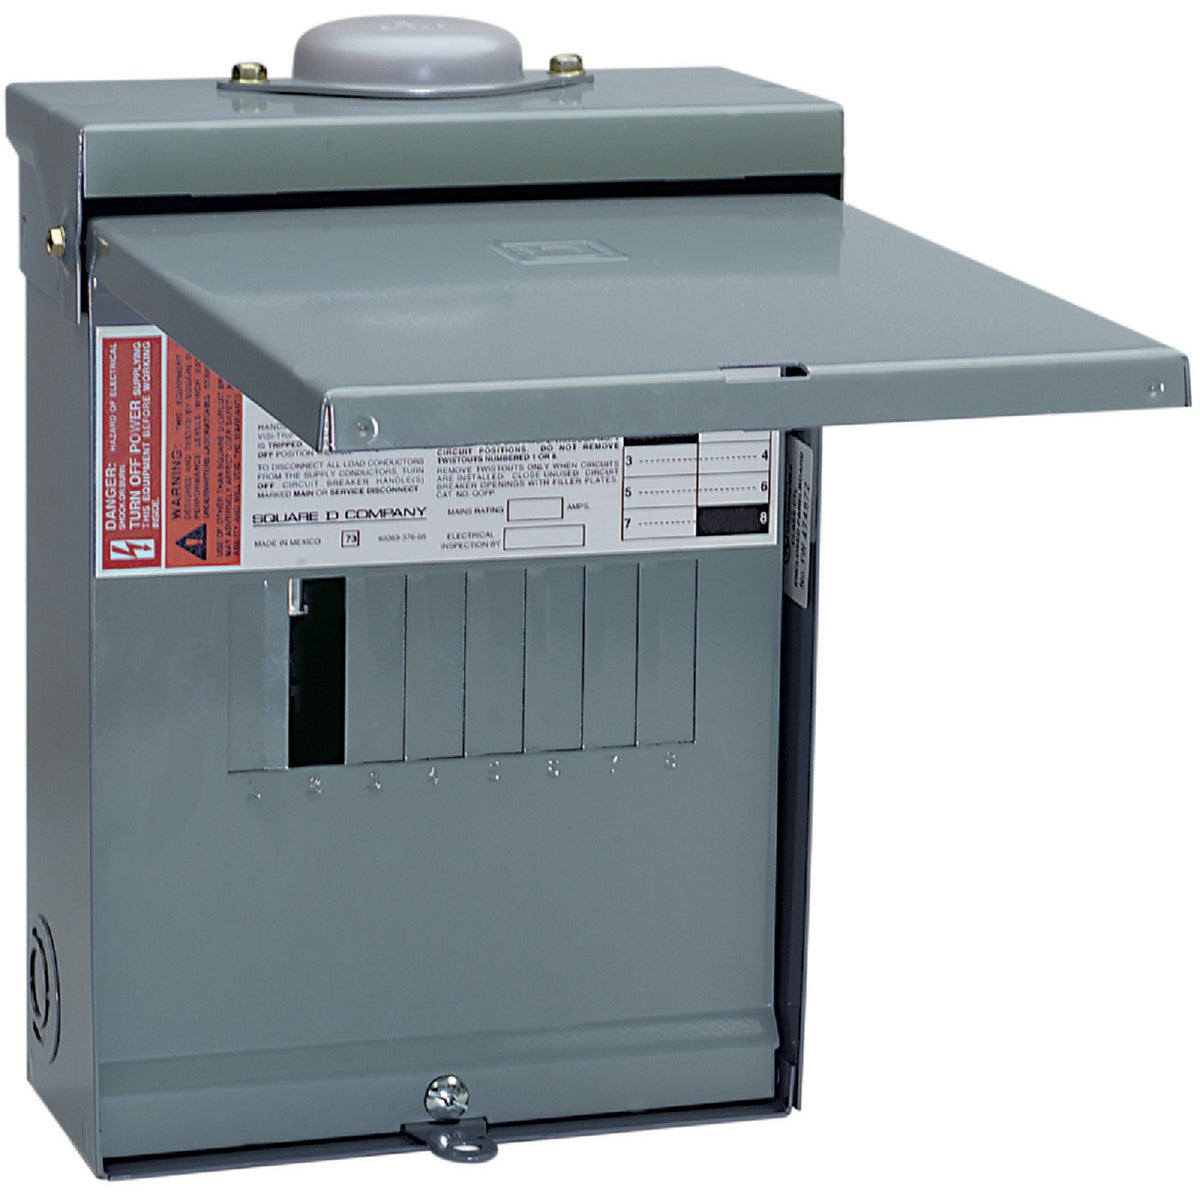 100A LOAD CENTER - QO612L100RBCP by Square D Co